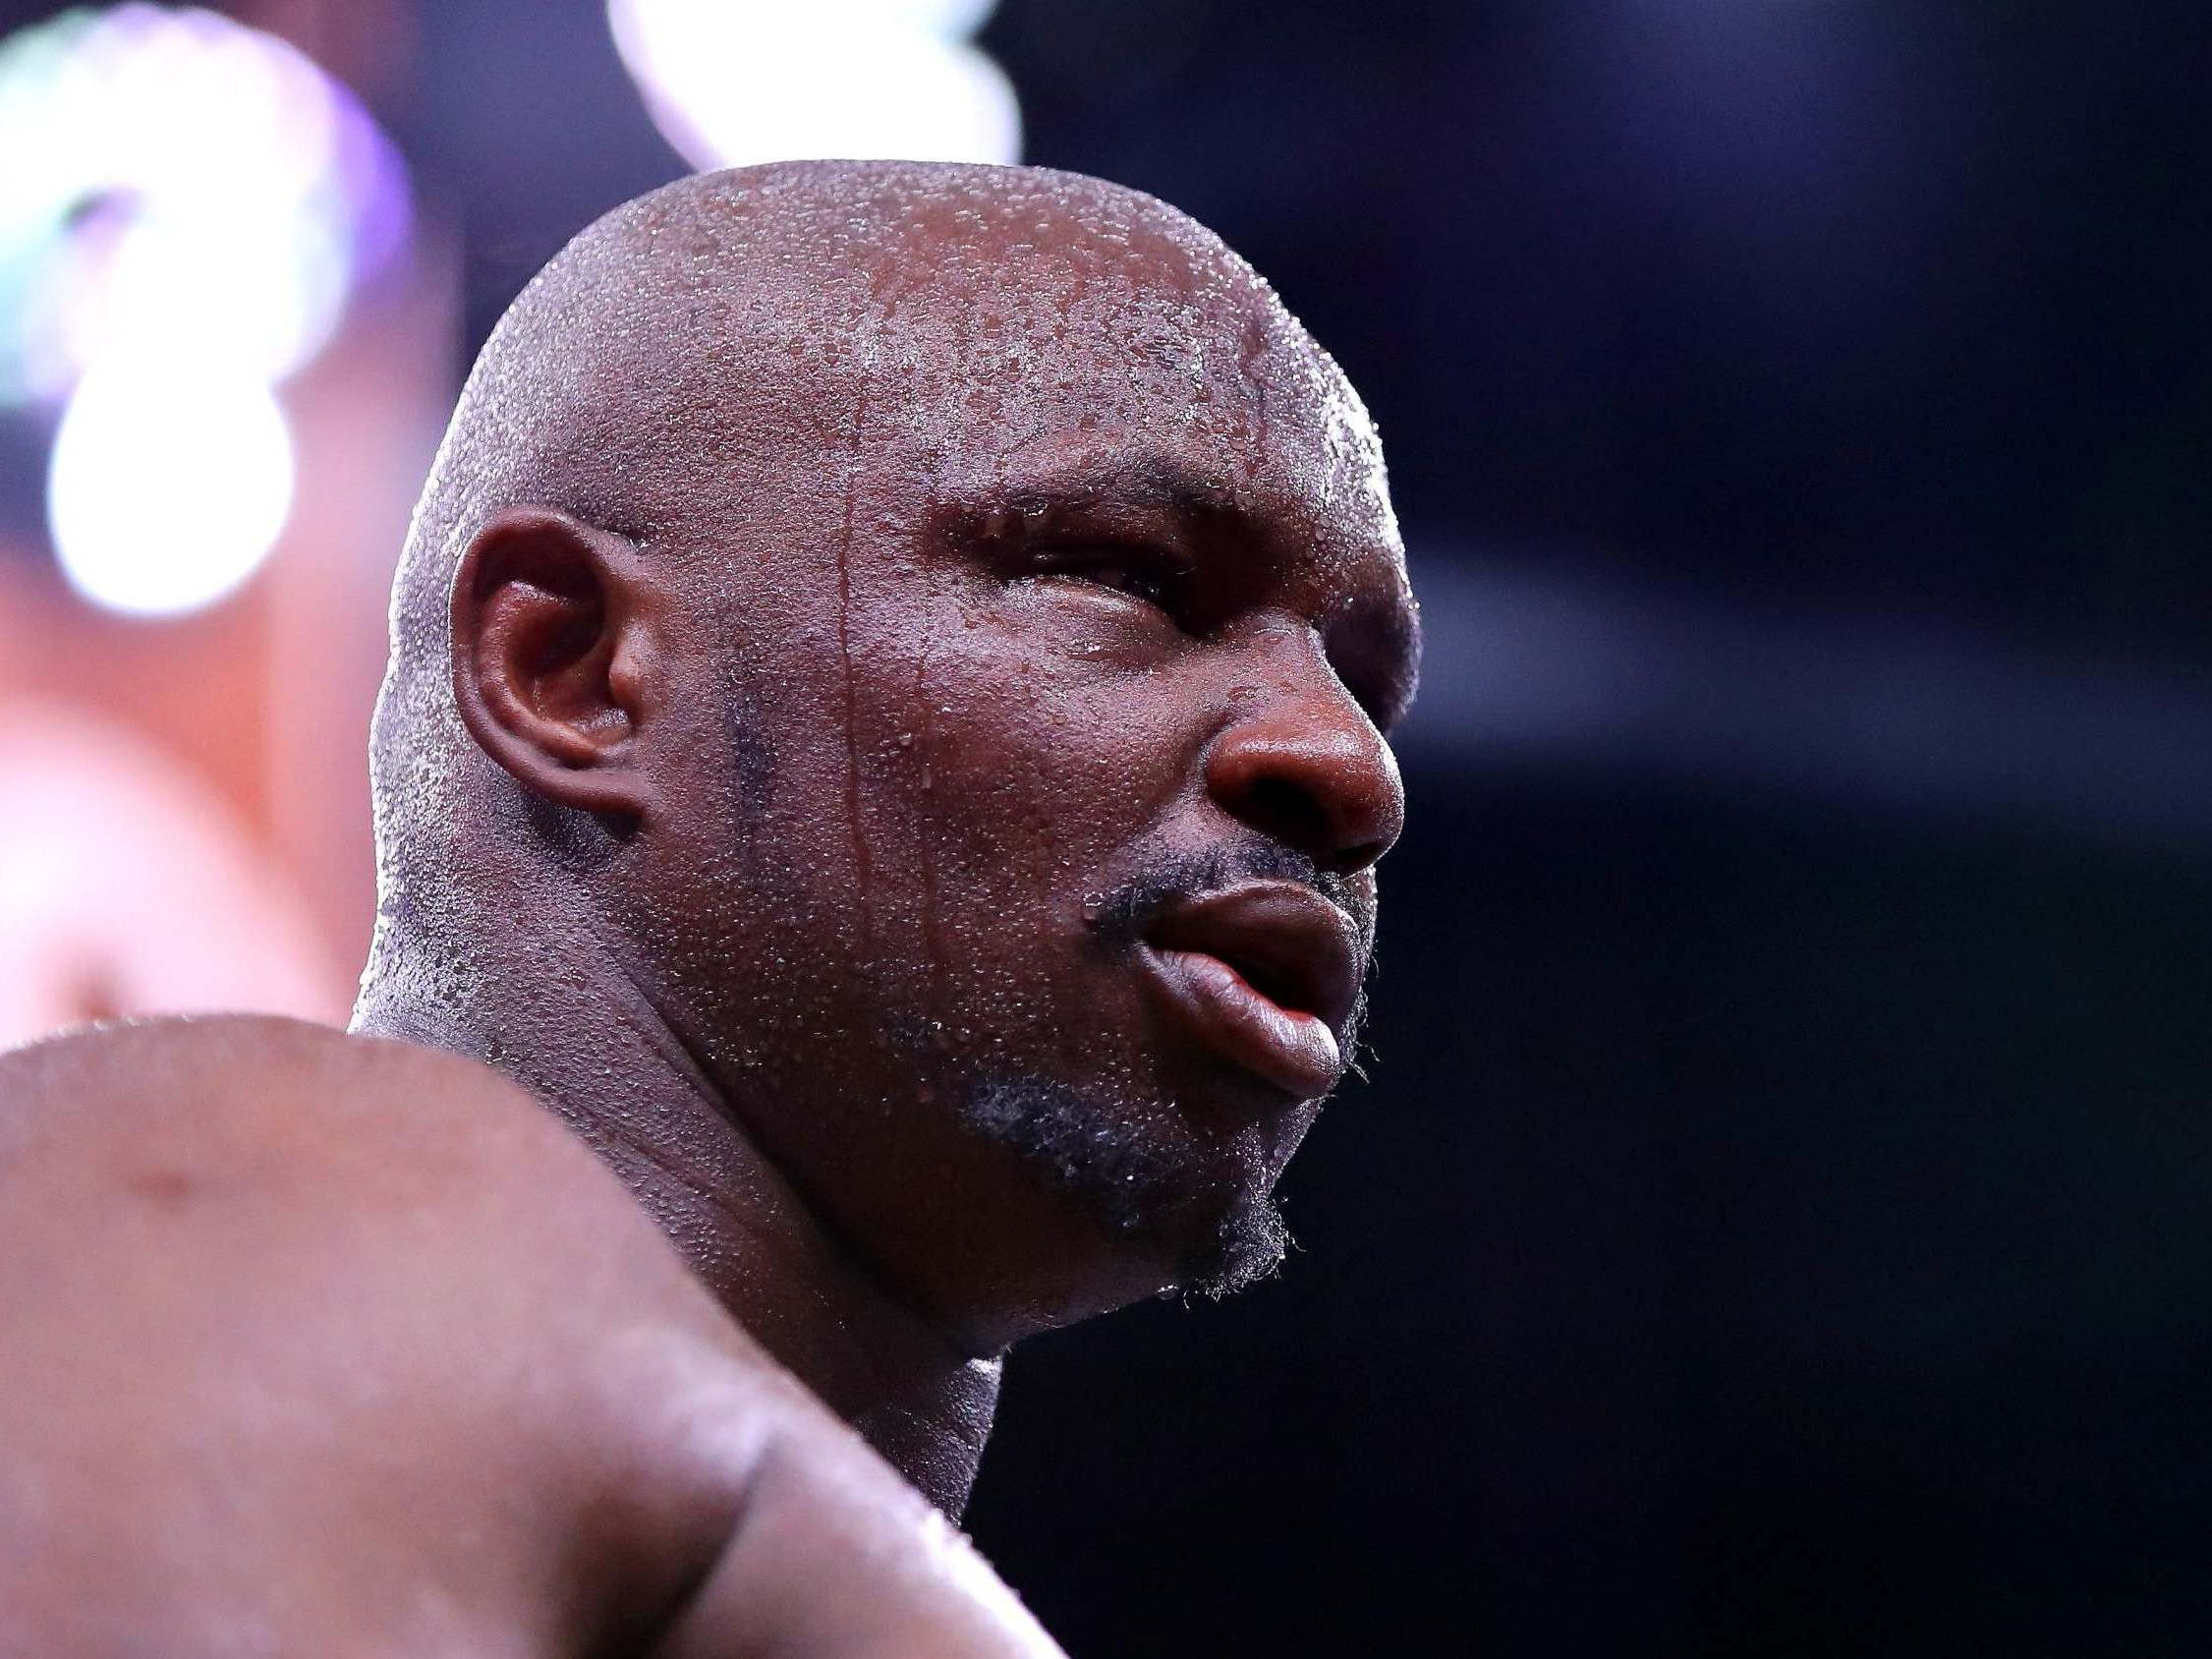 Dillian Whyte says Deontay Wilder will dodge fight by becoming WBC 'franchise' champion